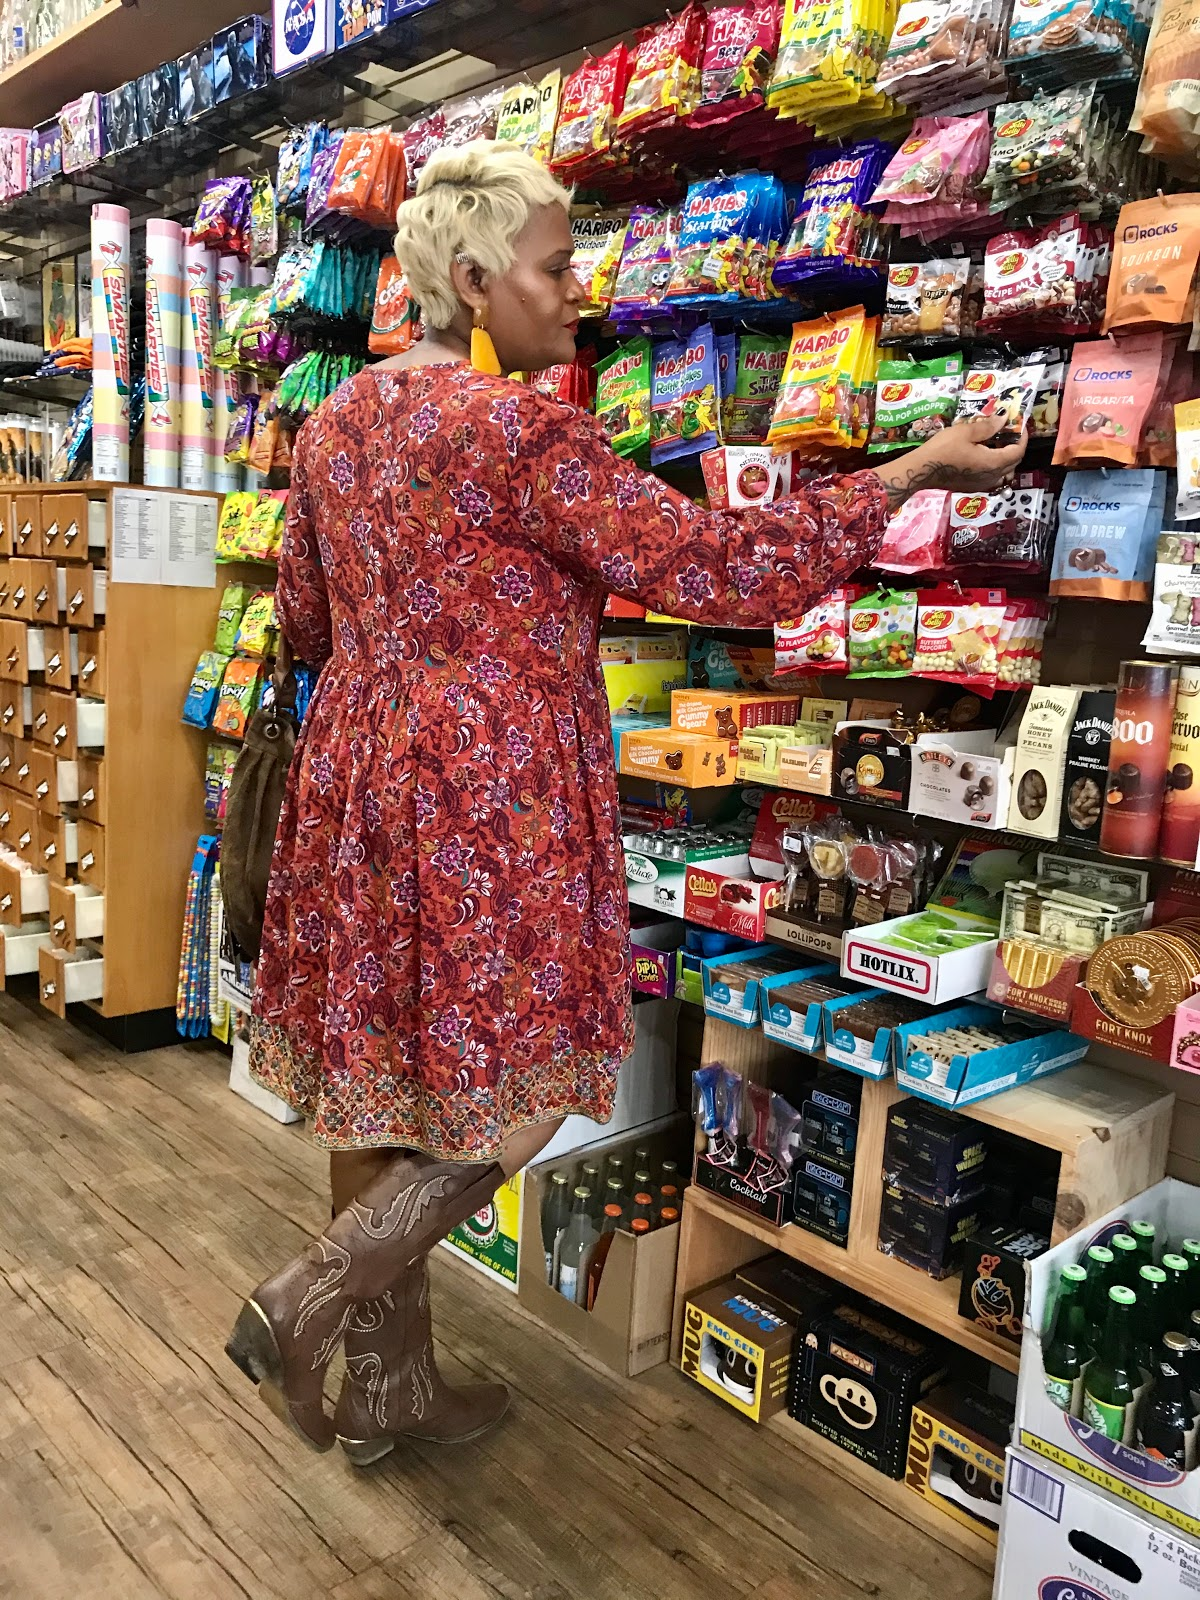 Judge My Style: Wearing cowgirl boots, boho dress and bohemian bag at candy store